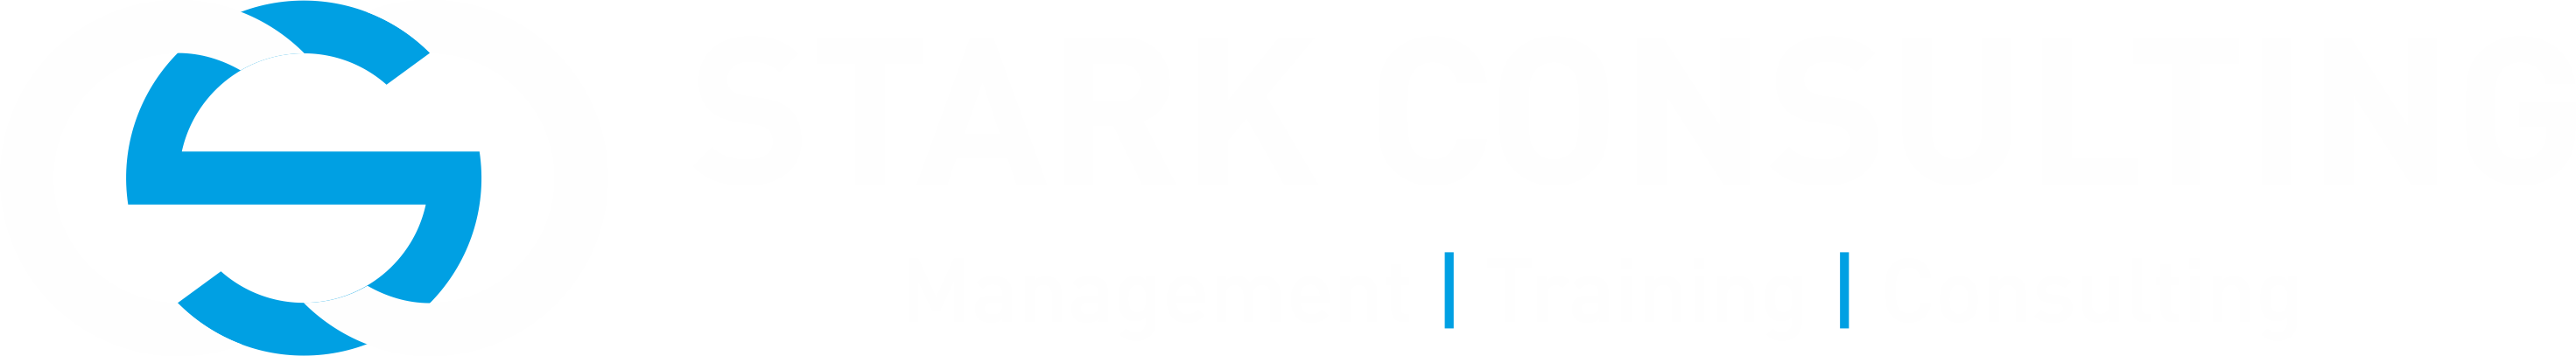 Stark Consulting